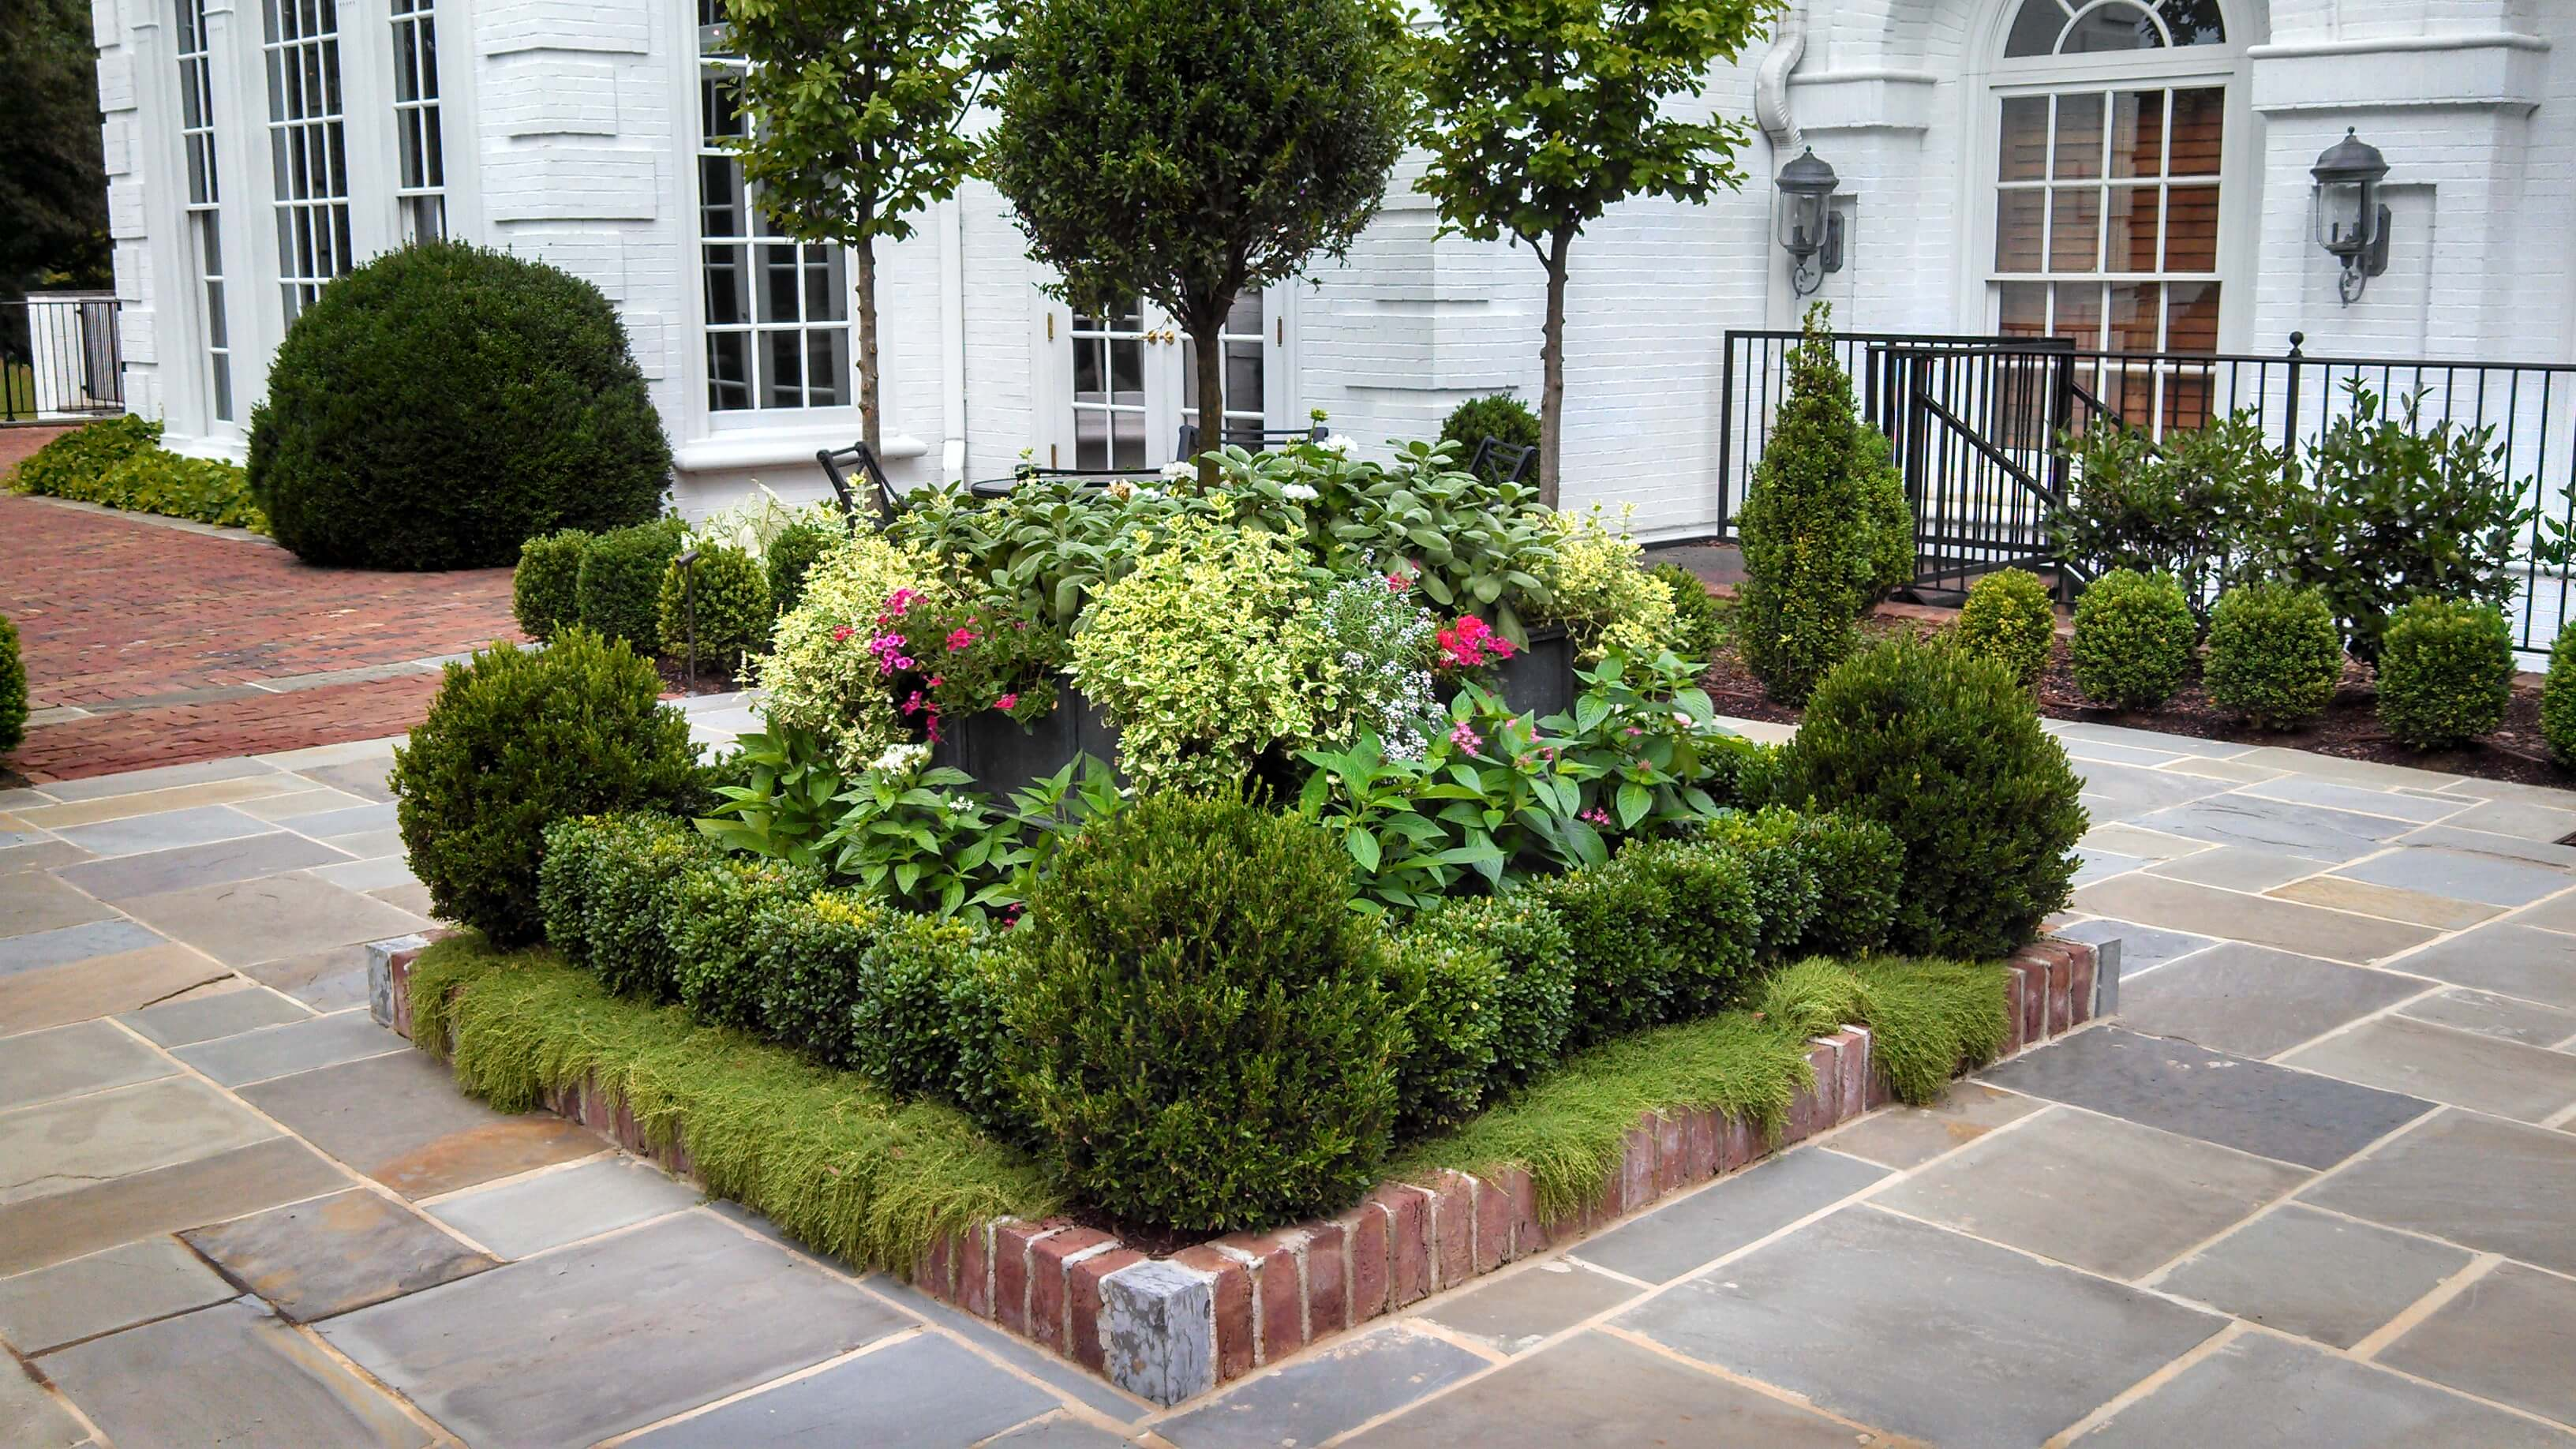 50 Best Front Yard Landscaping Ideas and Garden Designs ... on Front Yard Patio Design Ideas id=21248